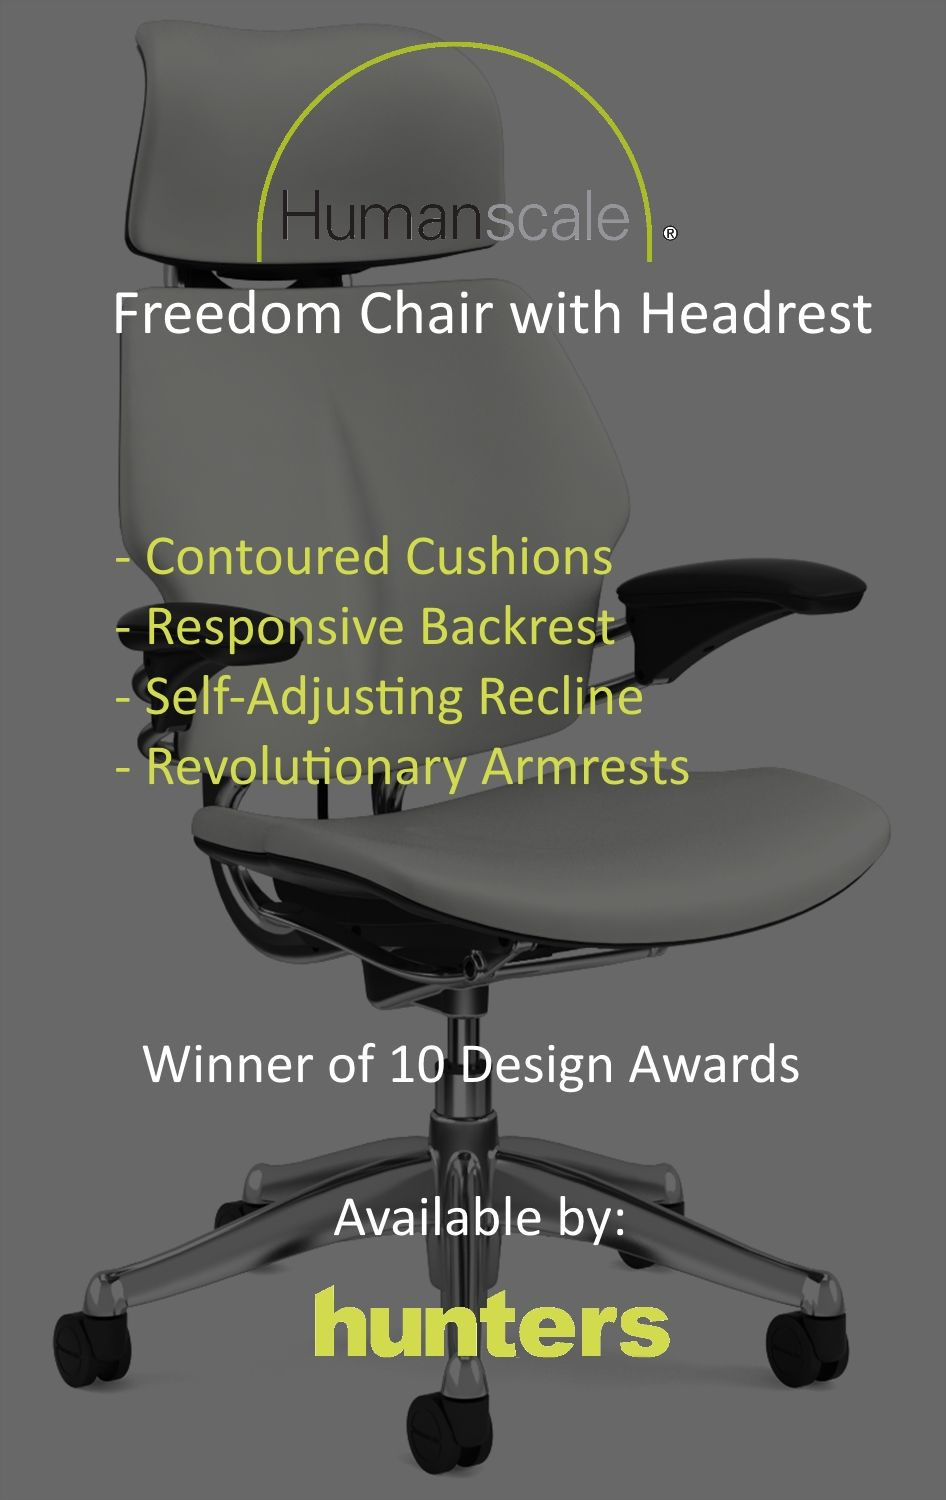 humanscale freedom task chair with headrest review